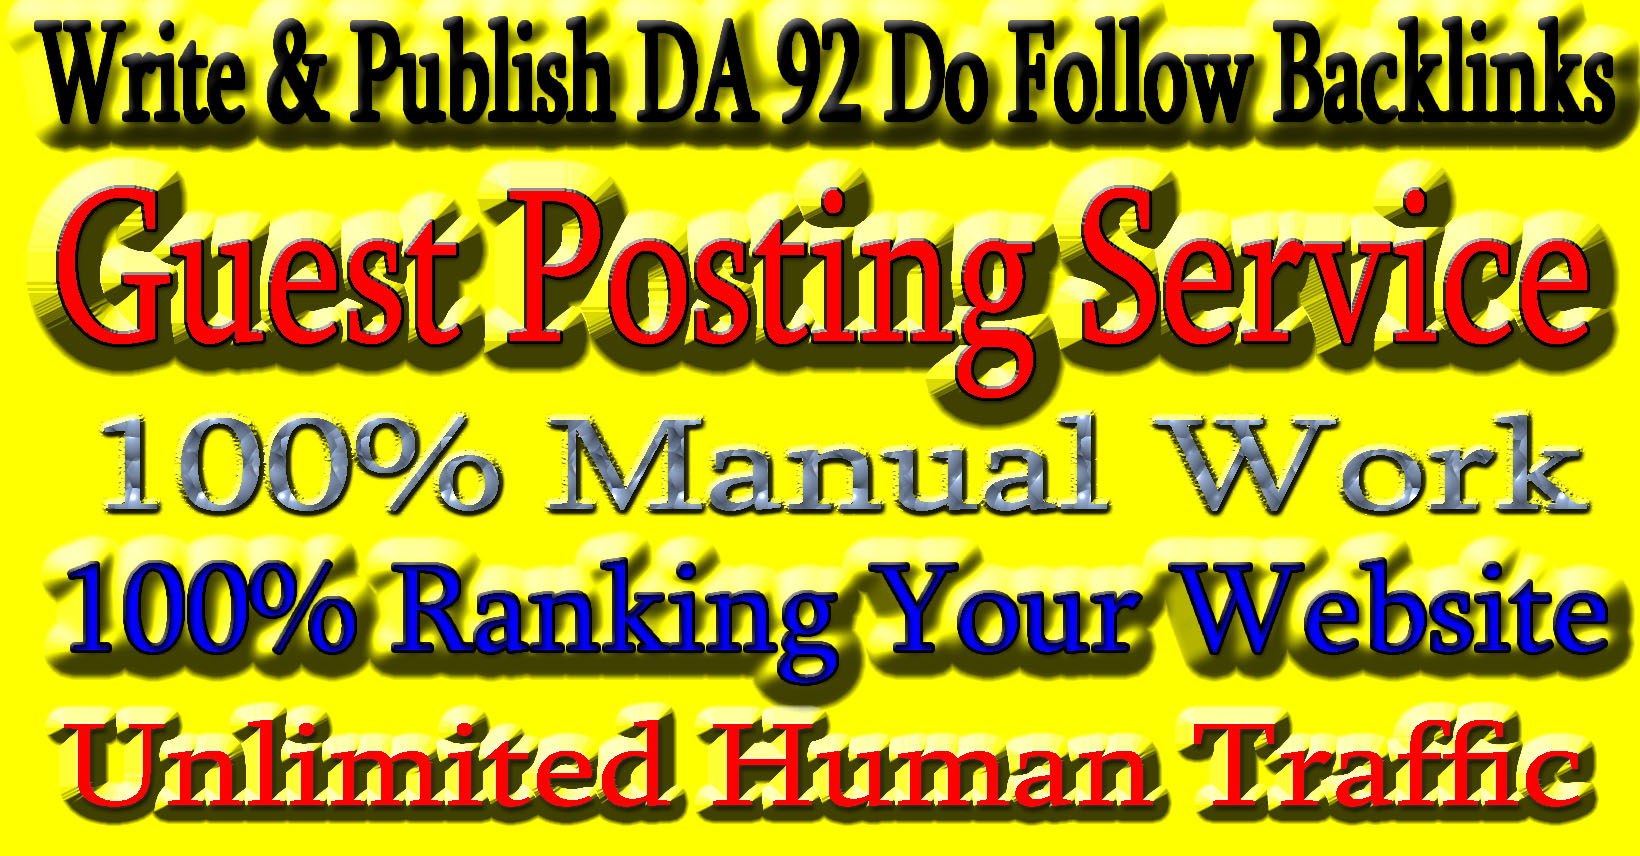 I will publish high quality seo guest p0st with dofollow backlinks